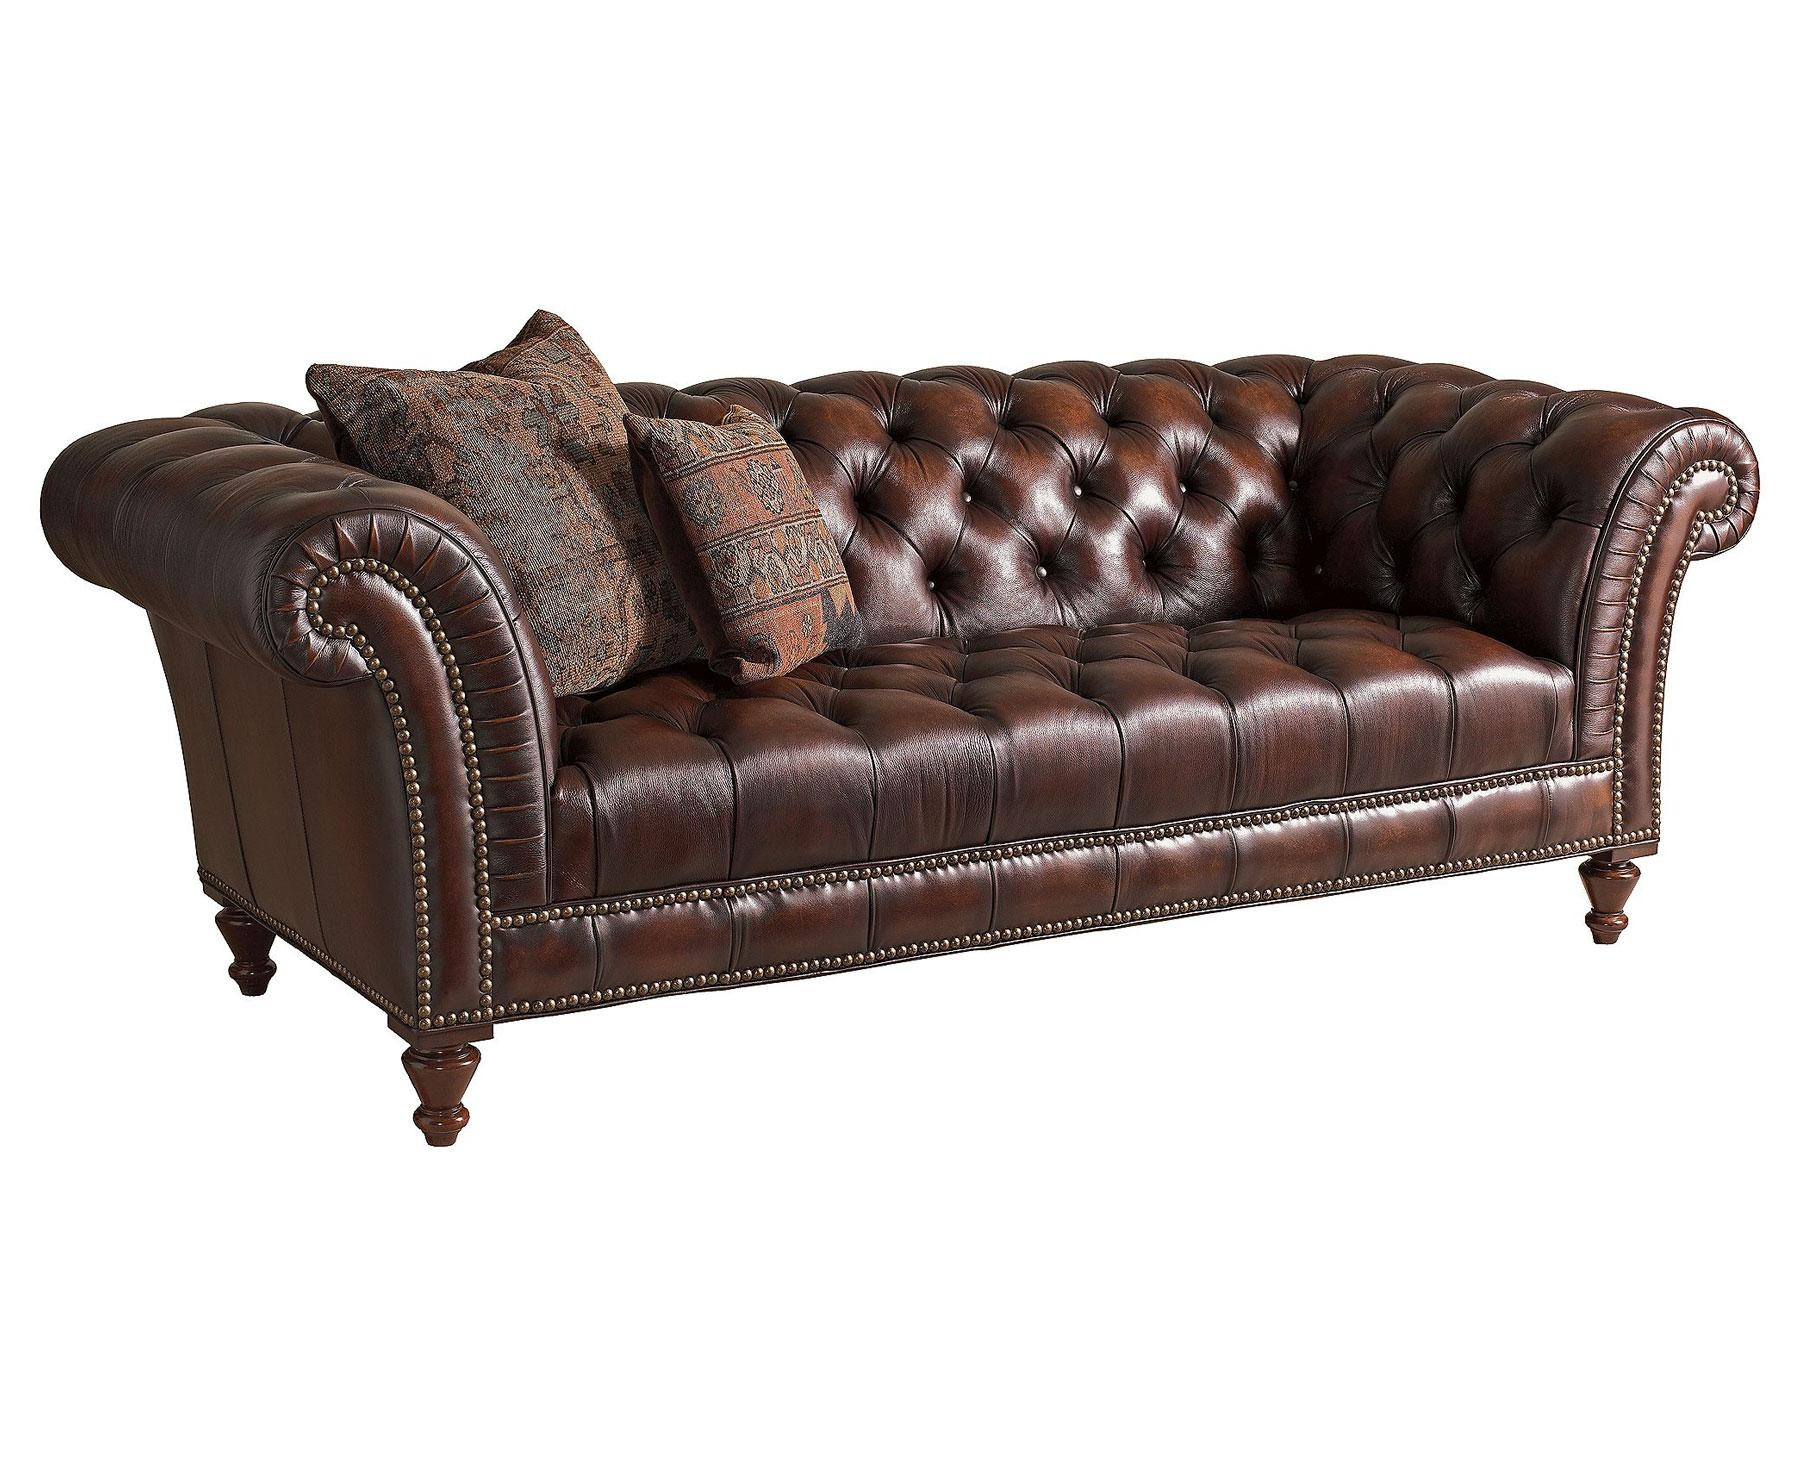 Distressed Leather Sofa Ebay | Tehranmix Decoration Throughout Victorian Leather Sofas (Image 3 of 20)